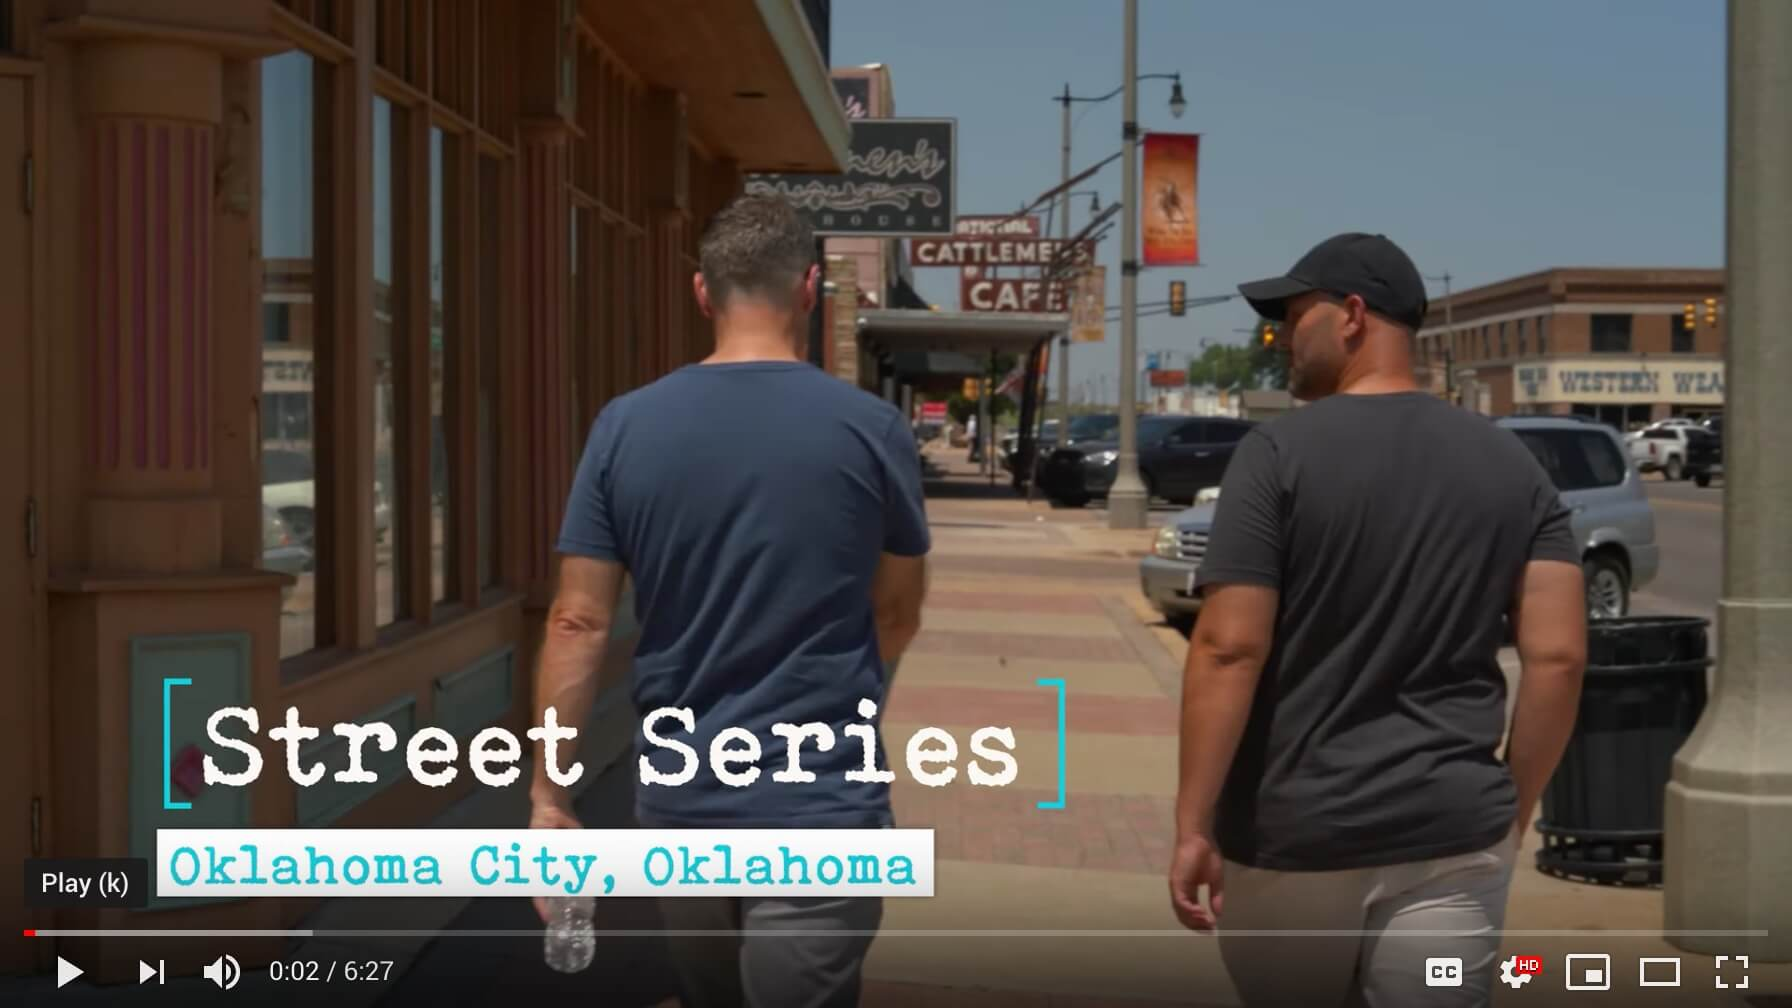 StreetSeriesOKC YouTube video screenshot